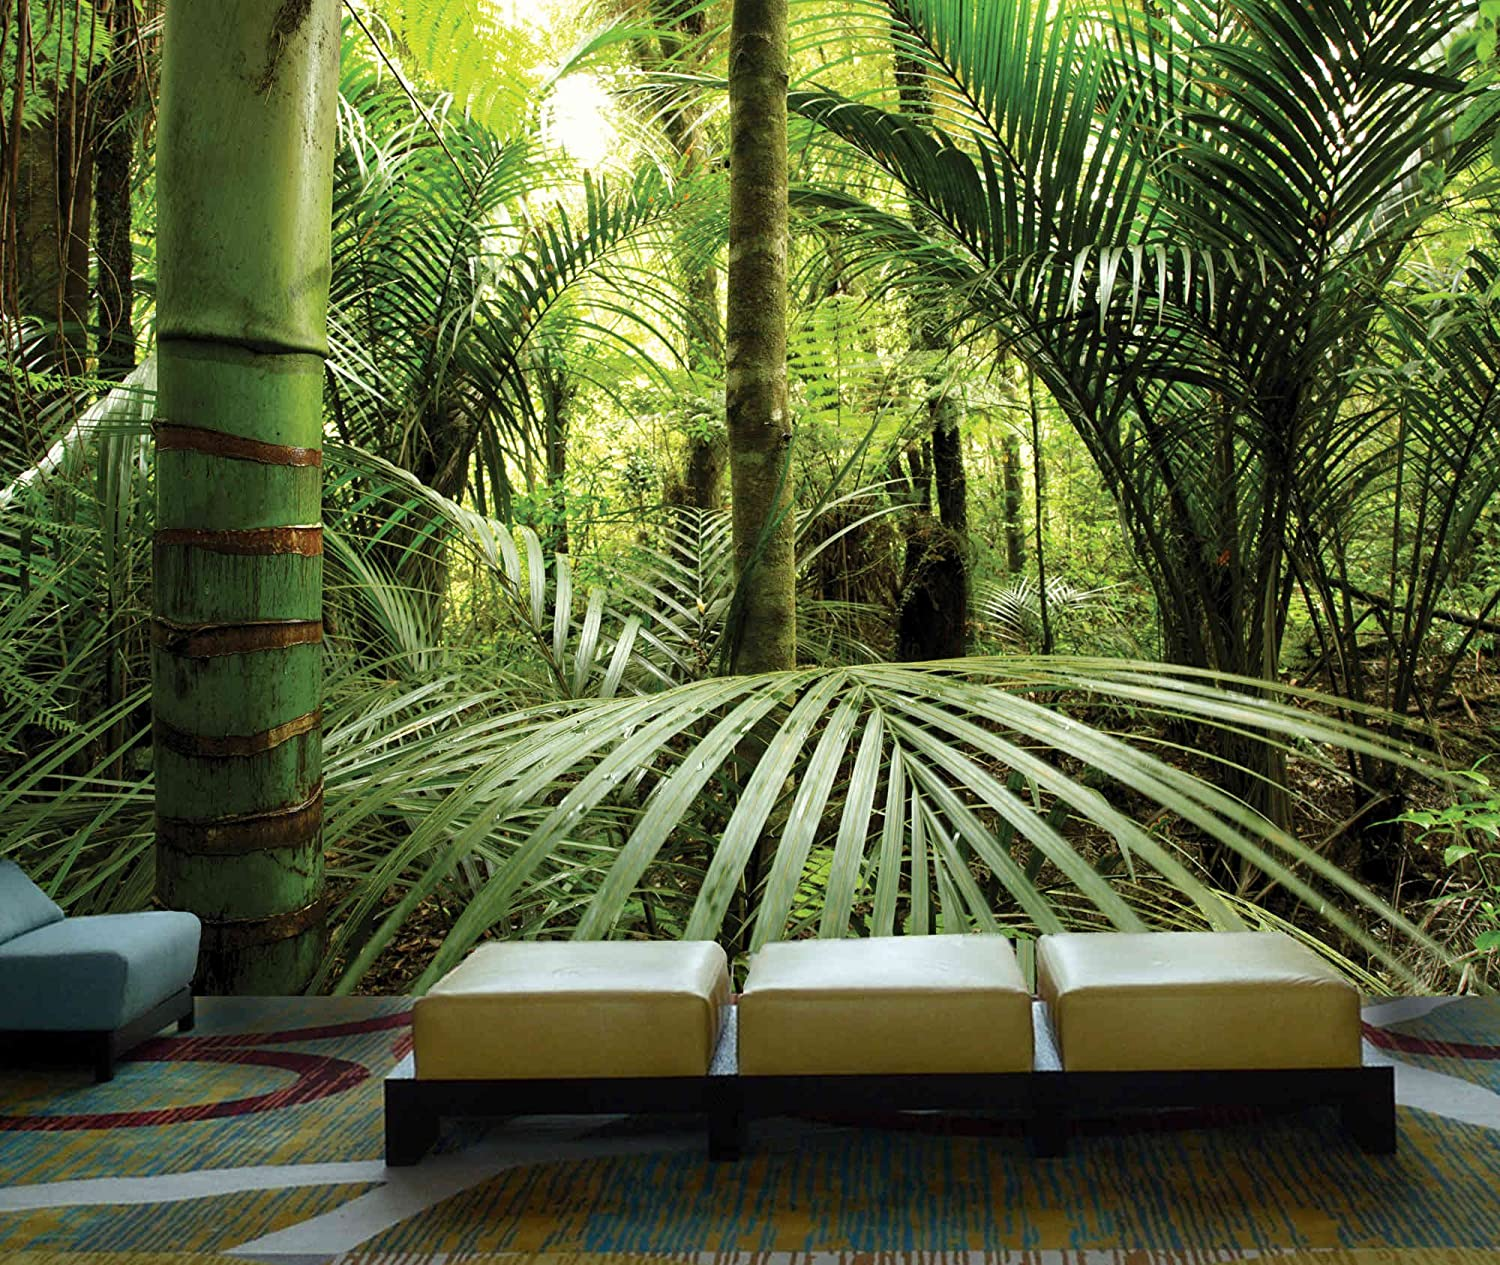 12 feet wide by 8 feet high prepasted wallpaper full wall size prepasted wallpaper full wall size mural from a photo of rainforest easy to hang remove and resuse hang again if u do as in our video